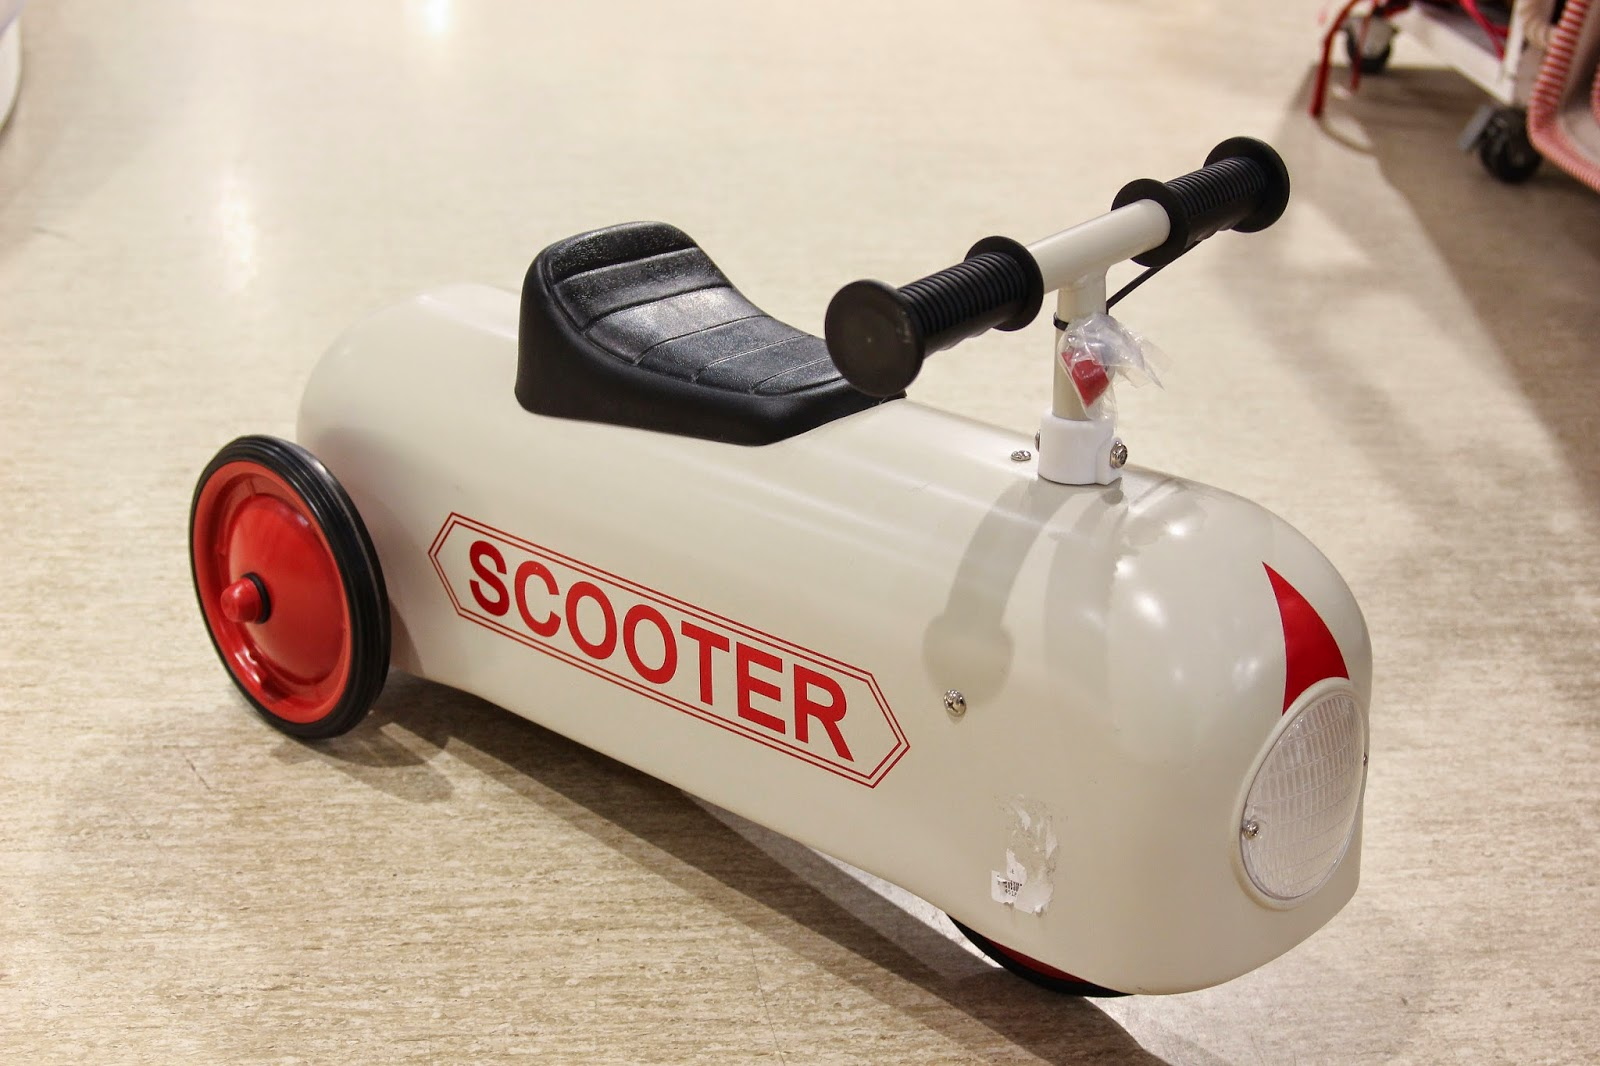 vintage ride-on scooter